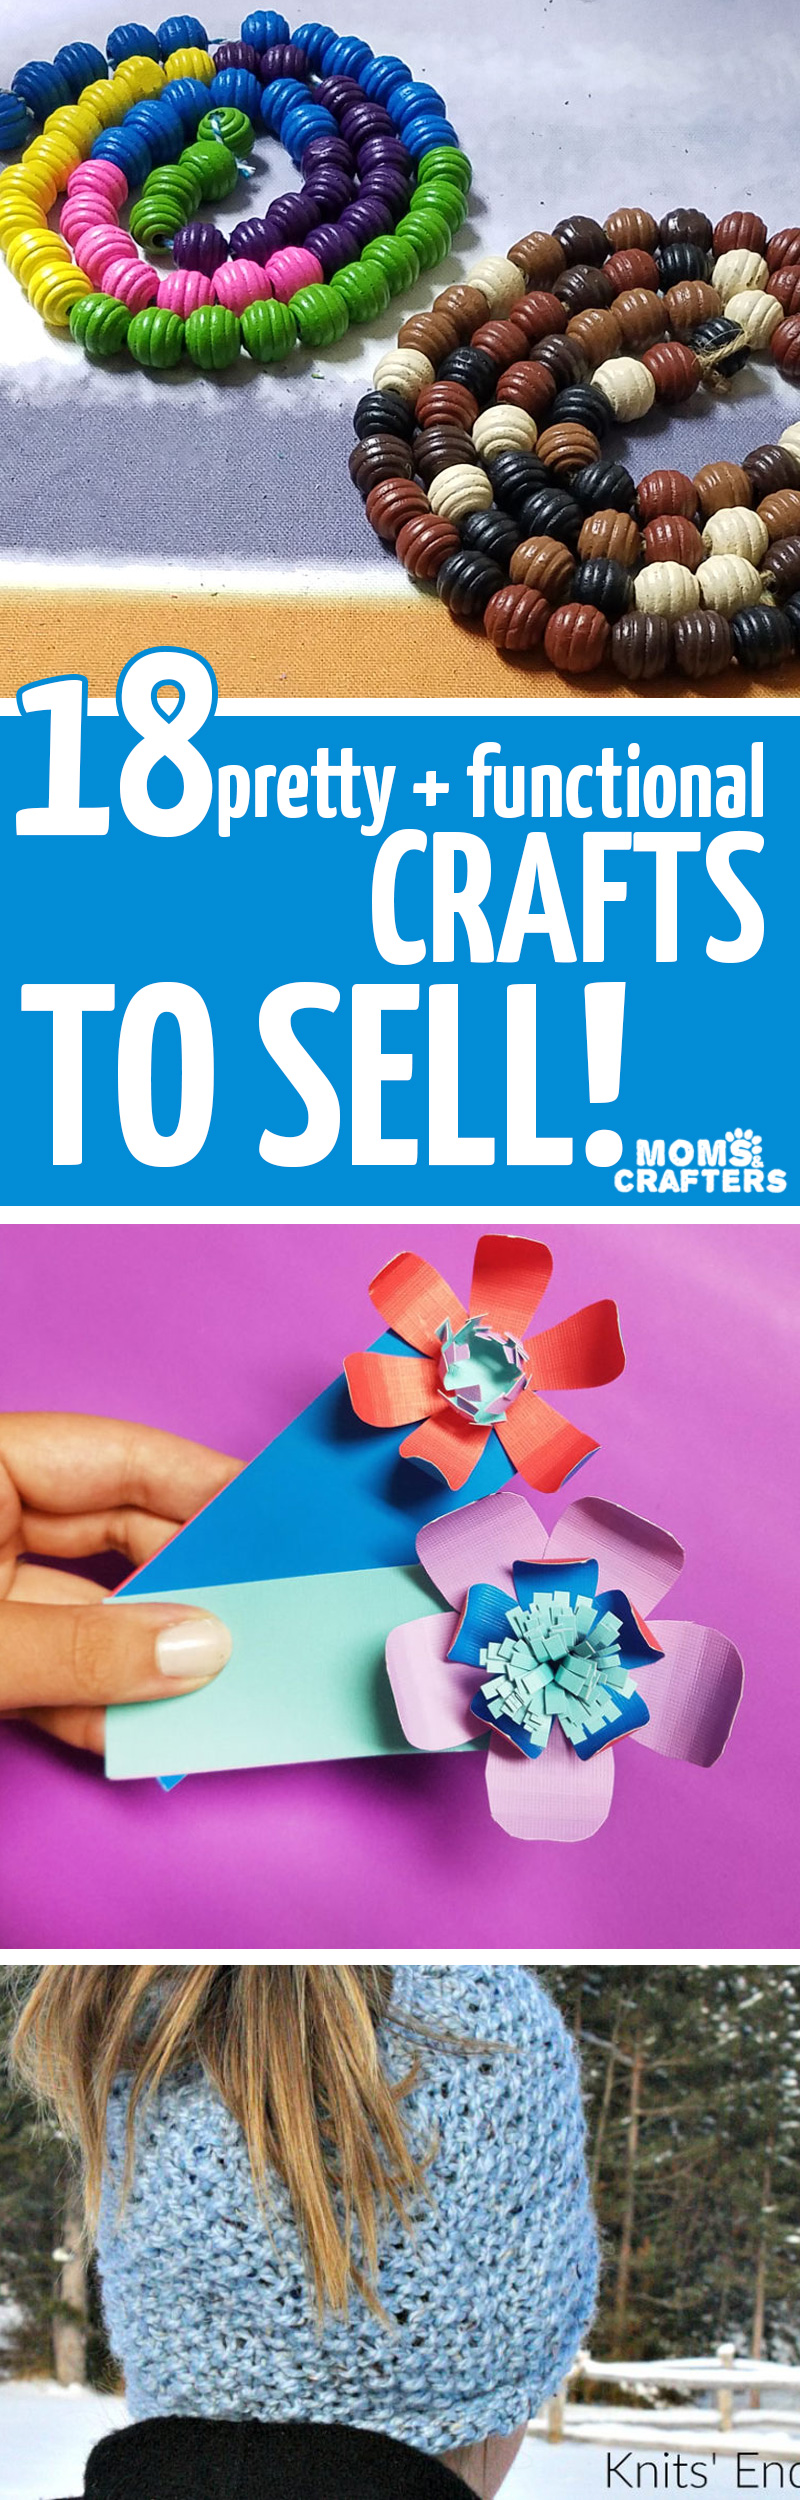 Things to make and sell at home moms and crafters for What can i make at home to sell online